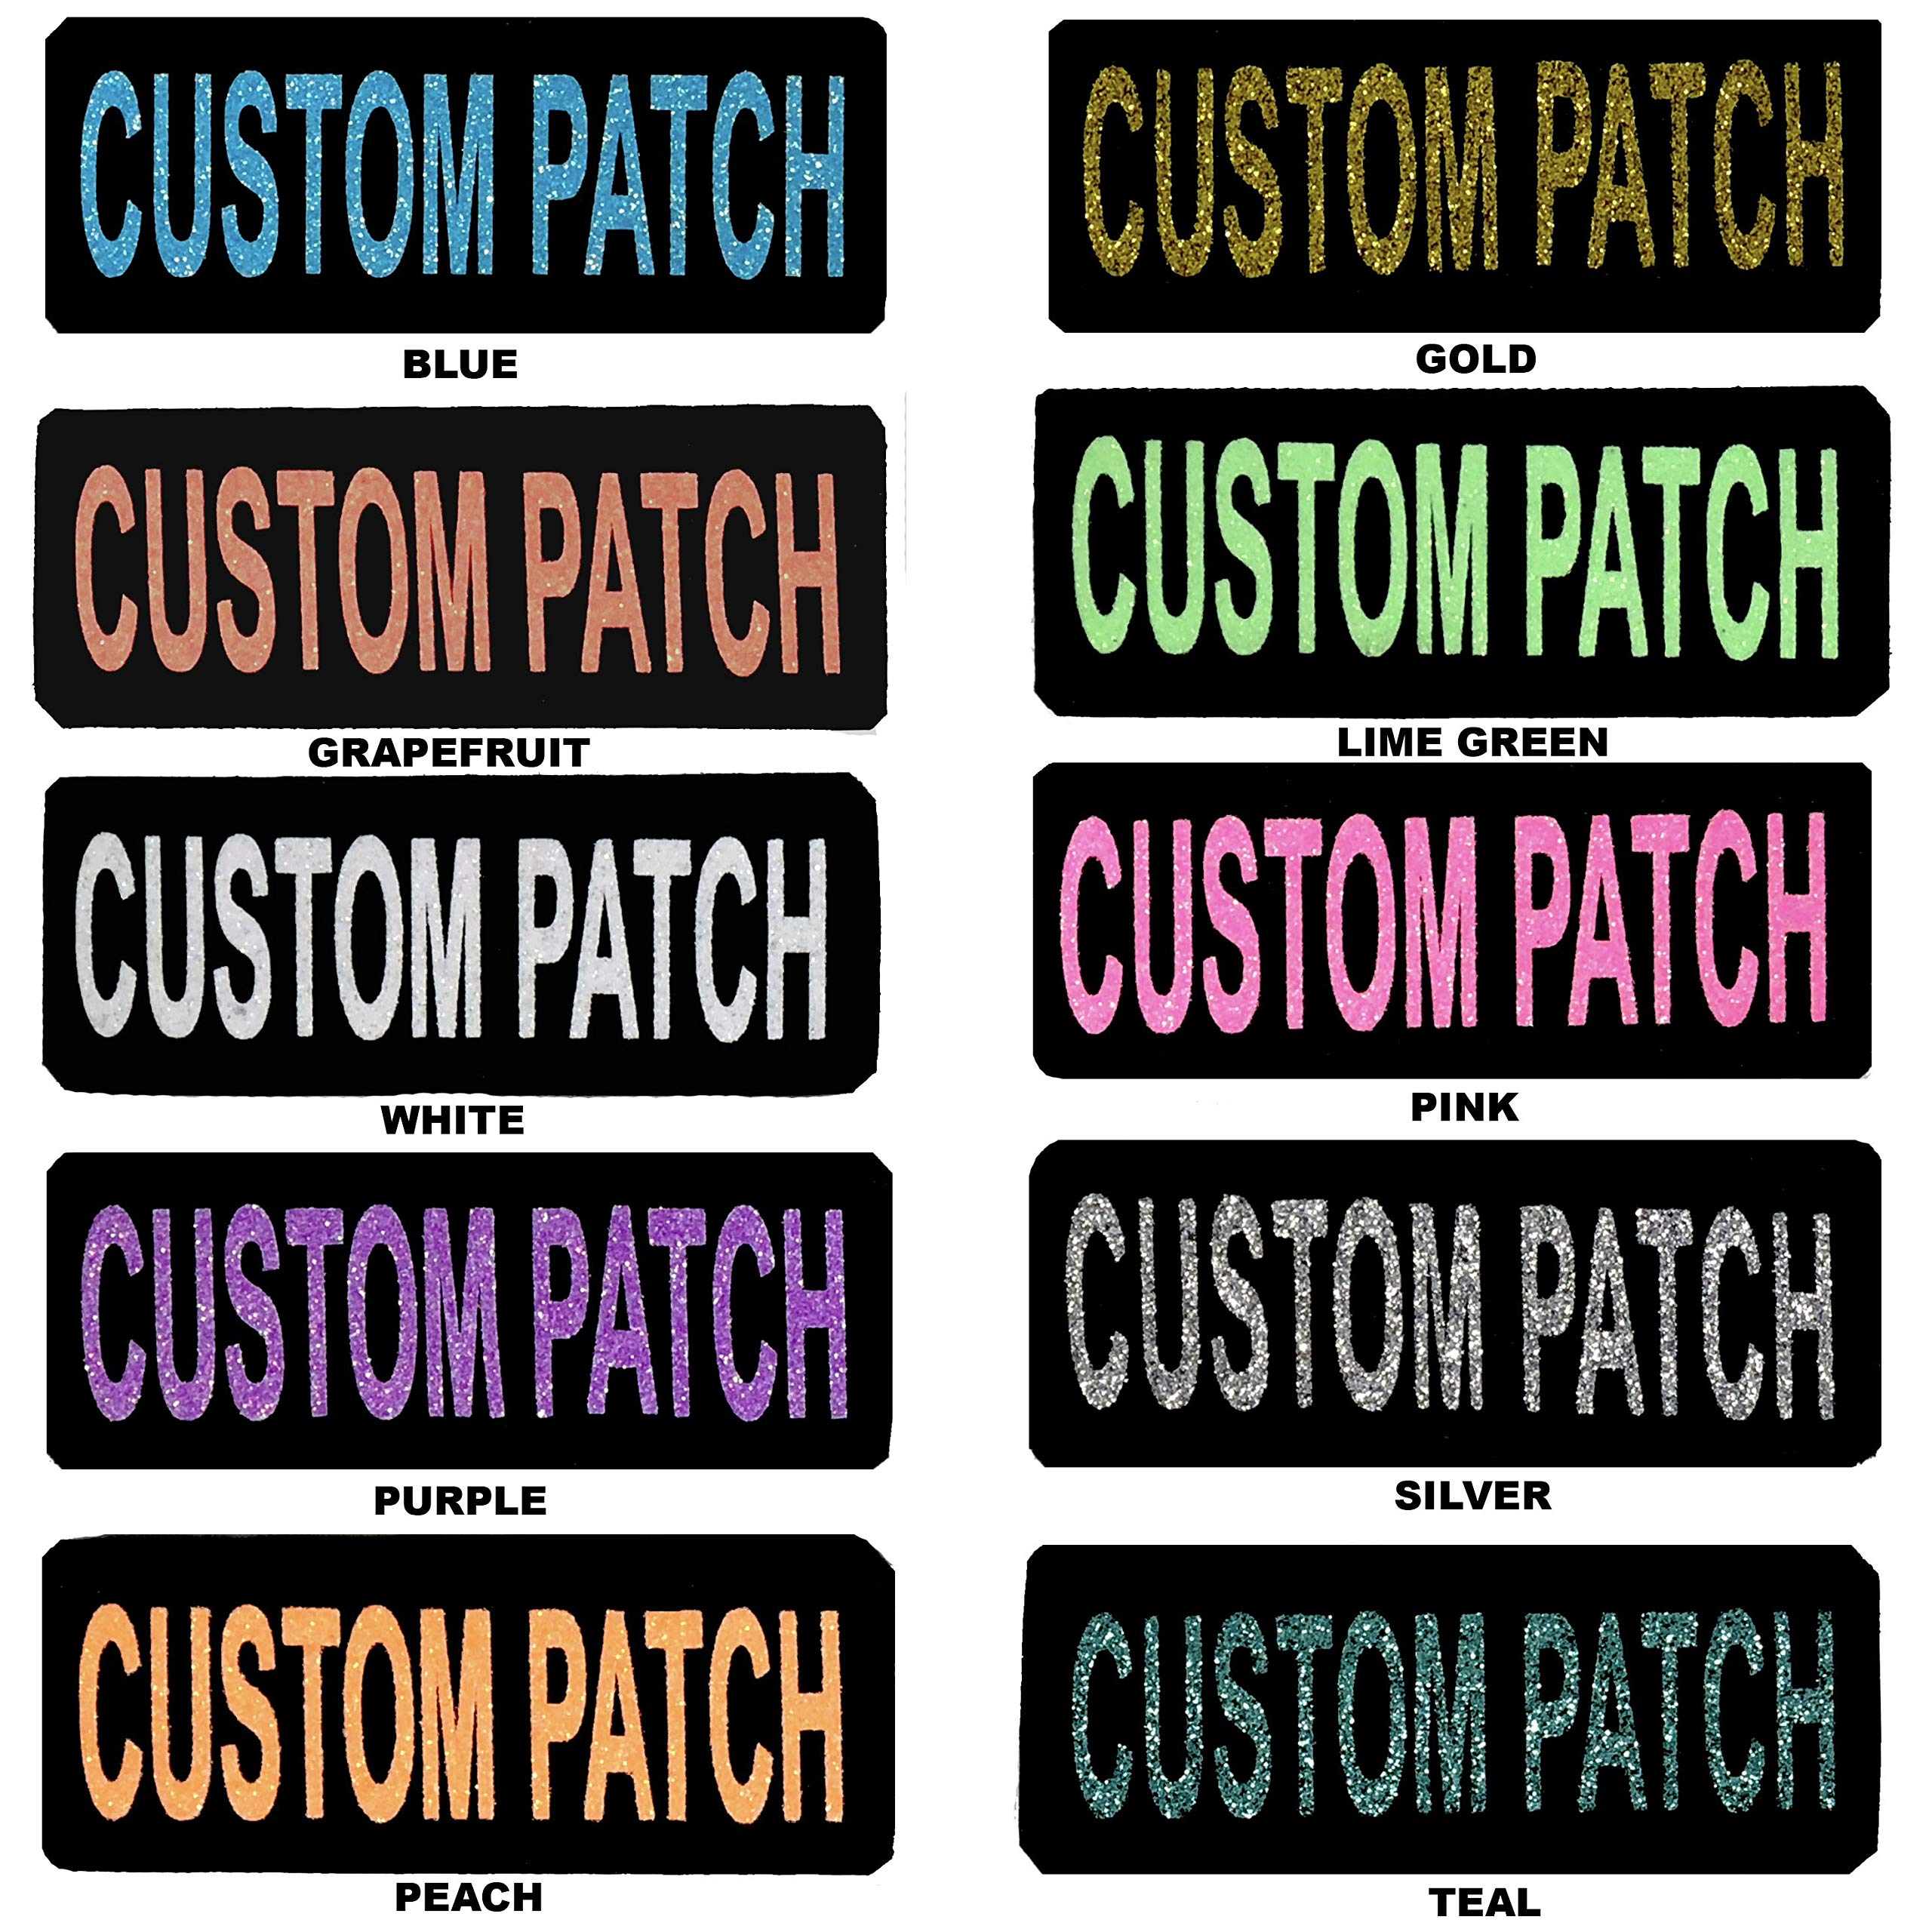 Dogline Custom Patch w/Glitter Letters for Dog Vest, Harness or Collar | Customizable Bling Text | Personalized Patches w/Hook Backing | Name, Agility, Service Dog, ESA